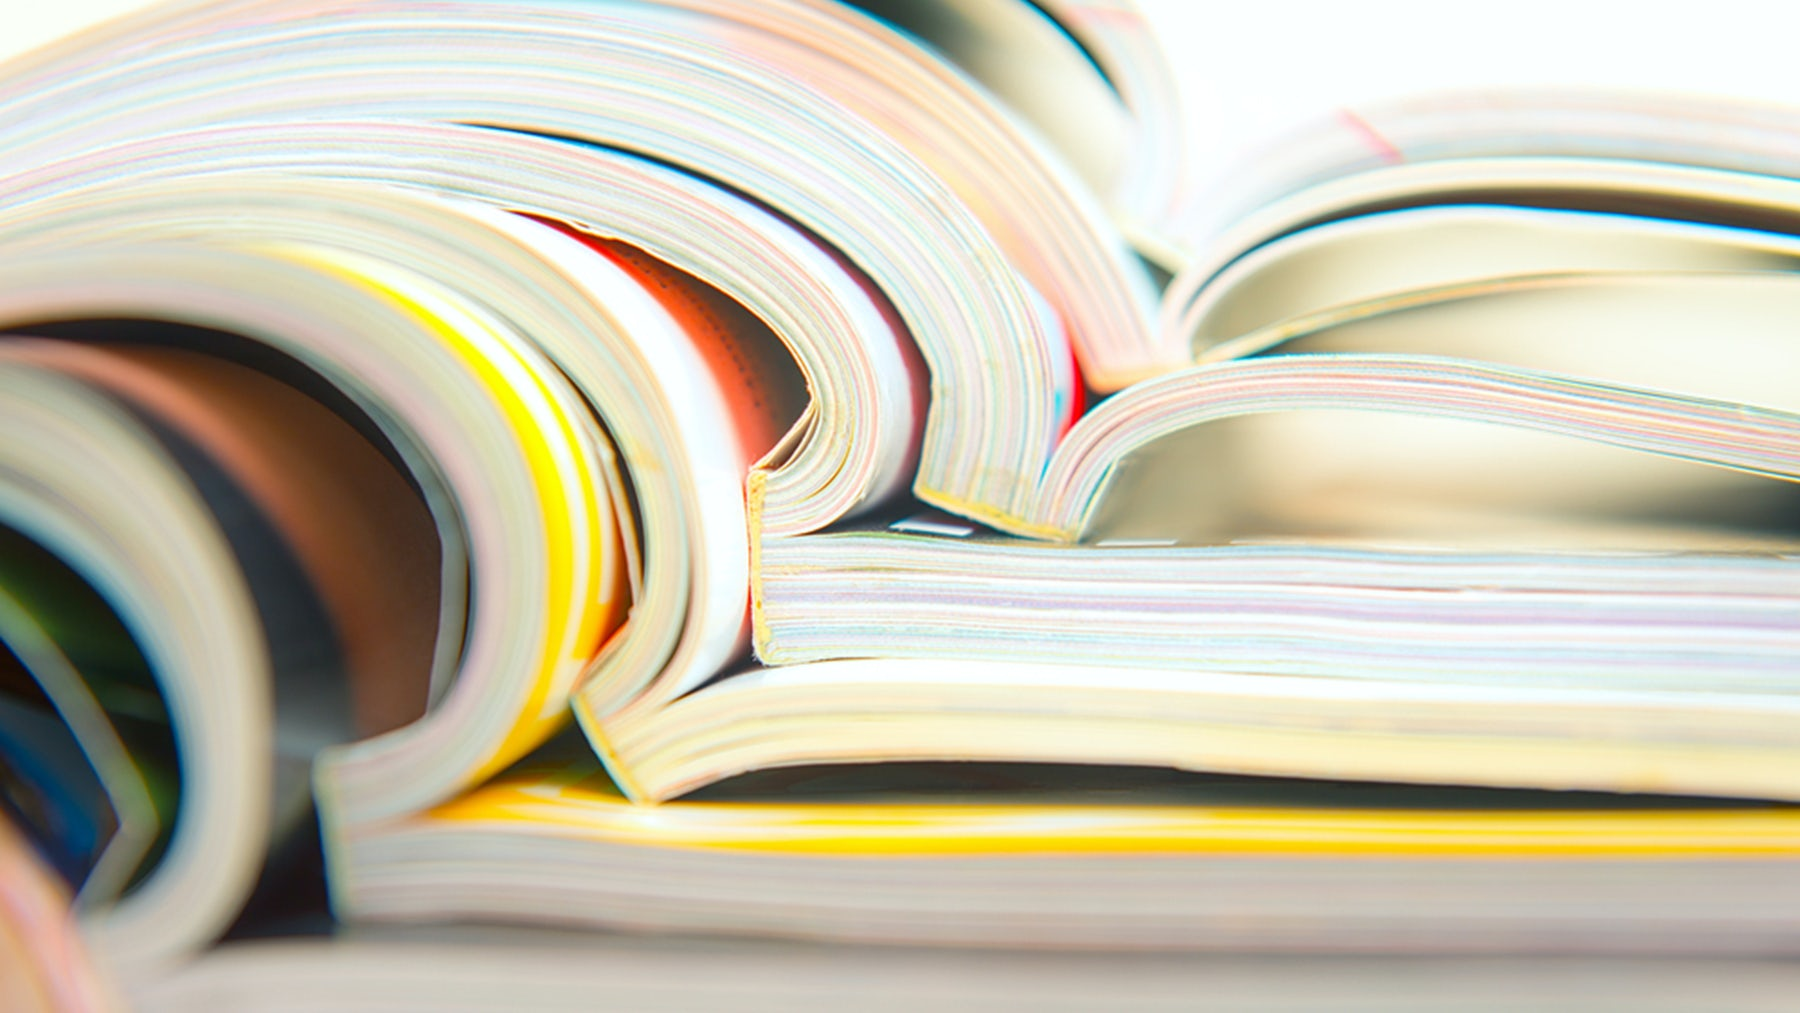 Stack of catalogues | Source: Shutterstock